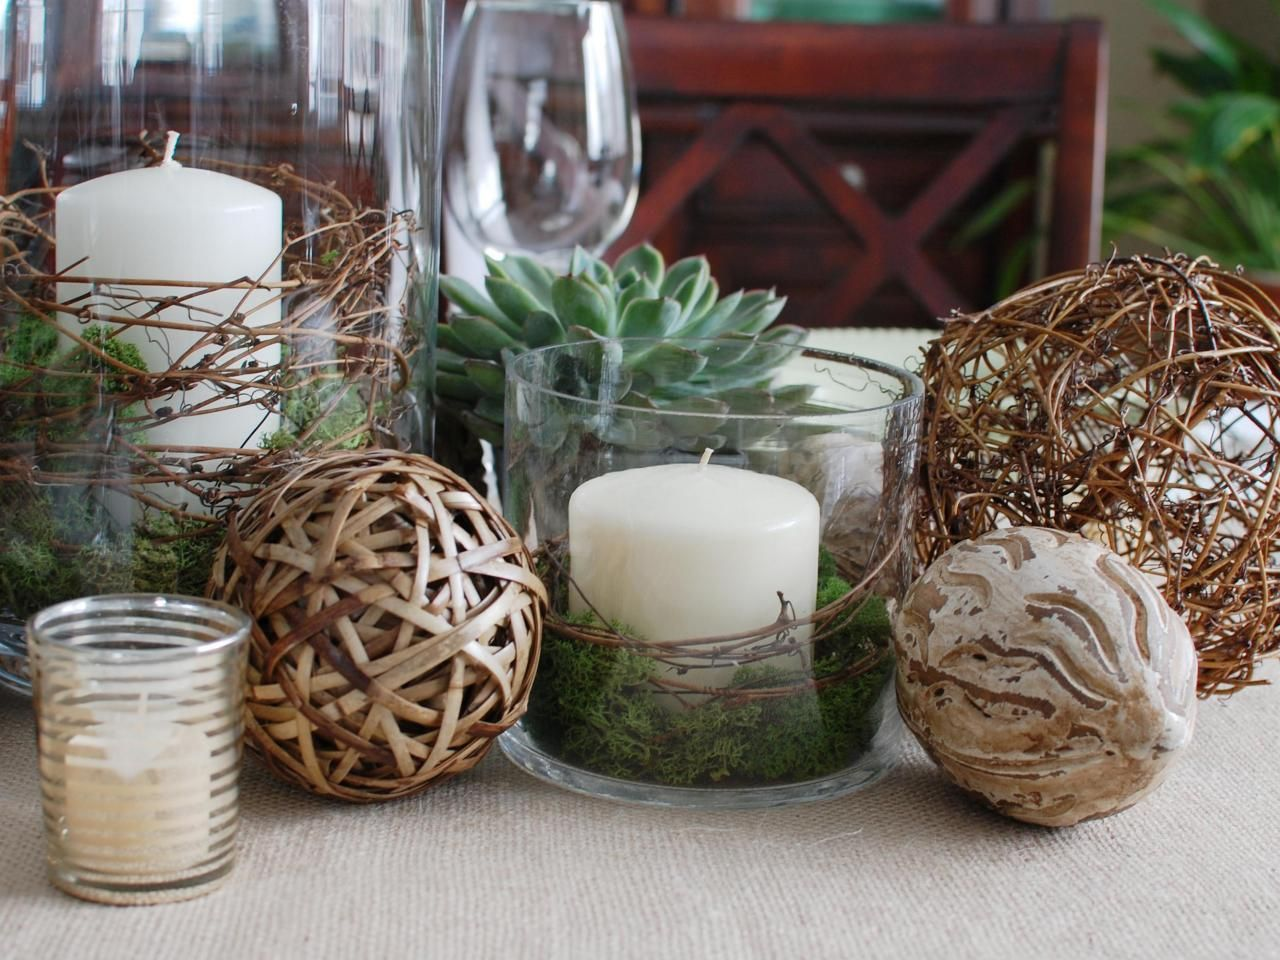 Diy table decorations dinner party - 30 Easy Centerpieces For Thanksgiving Or Fall Parties Entertaining Ideas Party Themes For